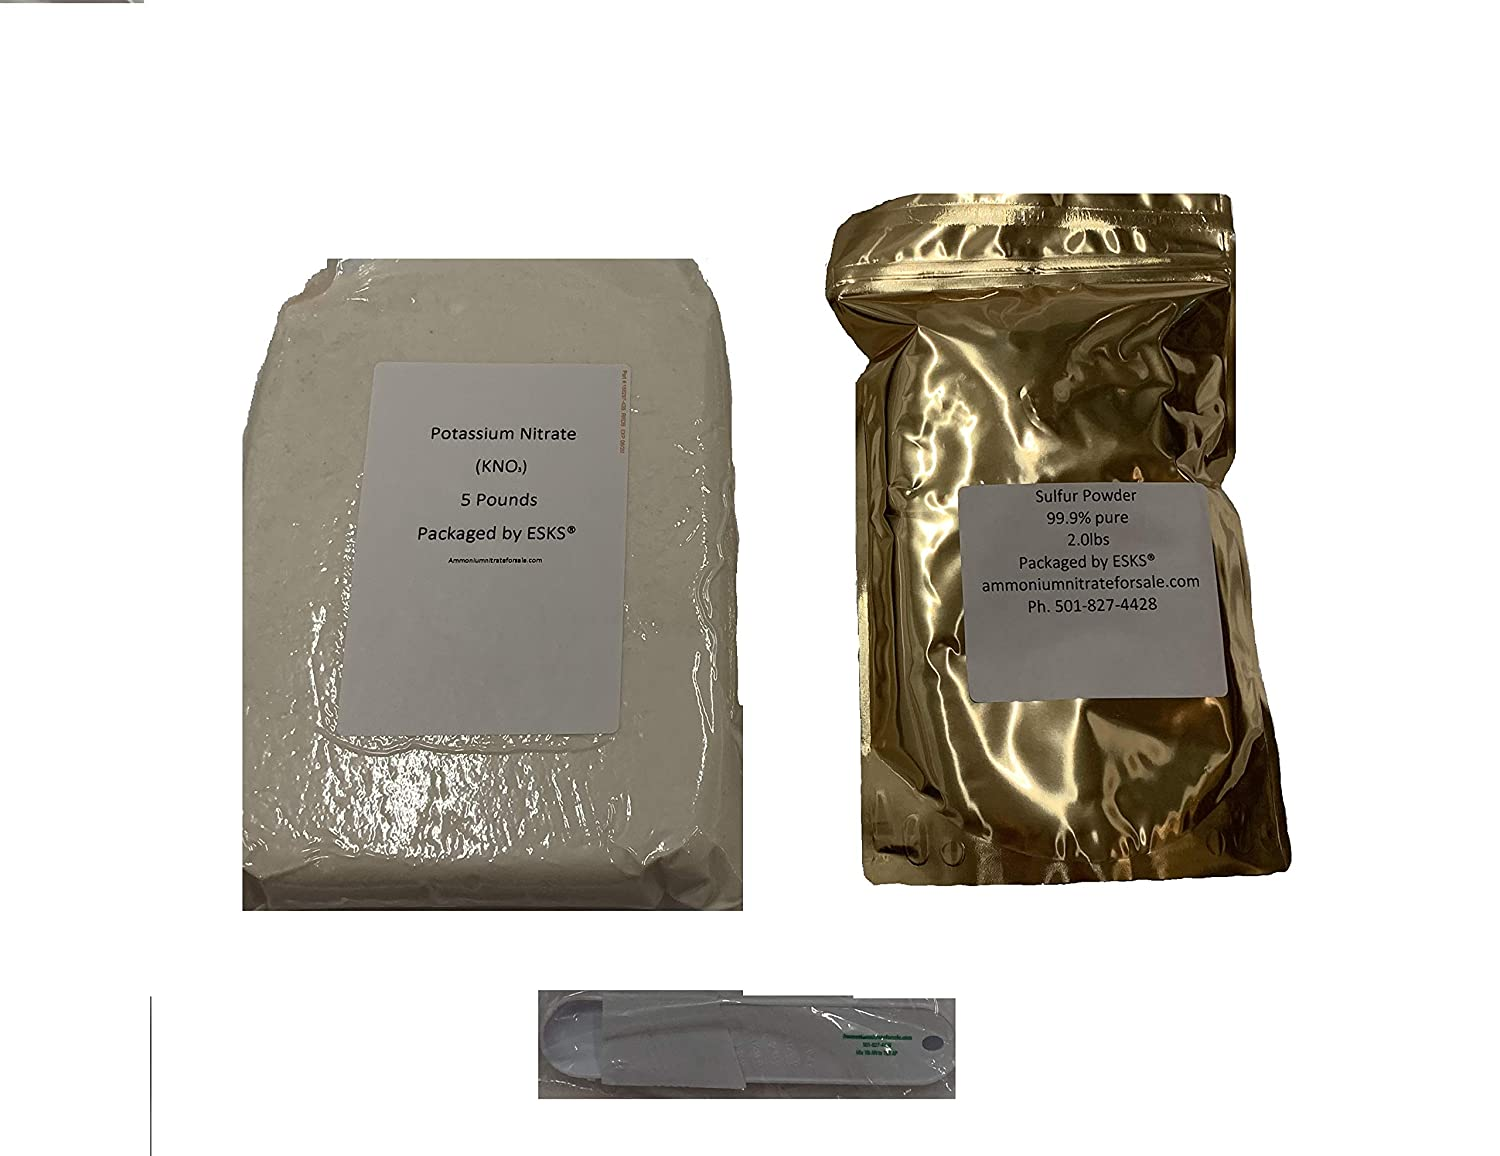 5lb Potassium Nitrate and 2lb Sulfur Powder Combo by ESKS